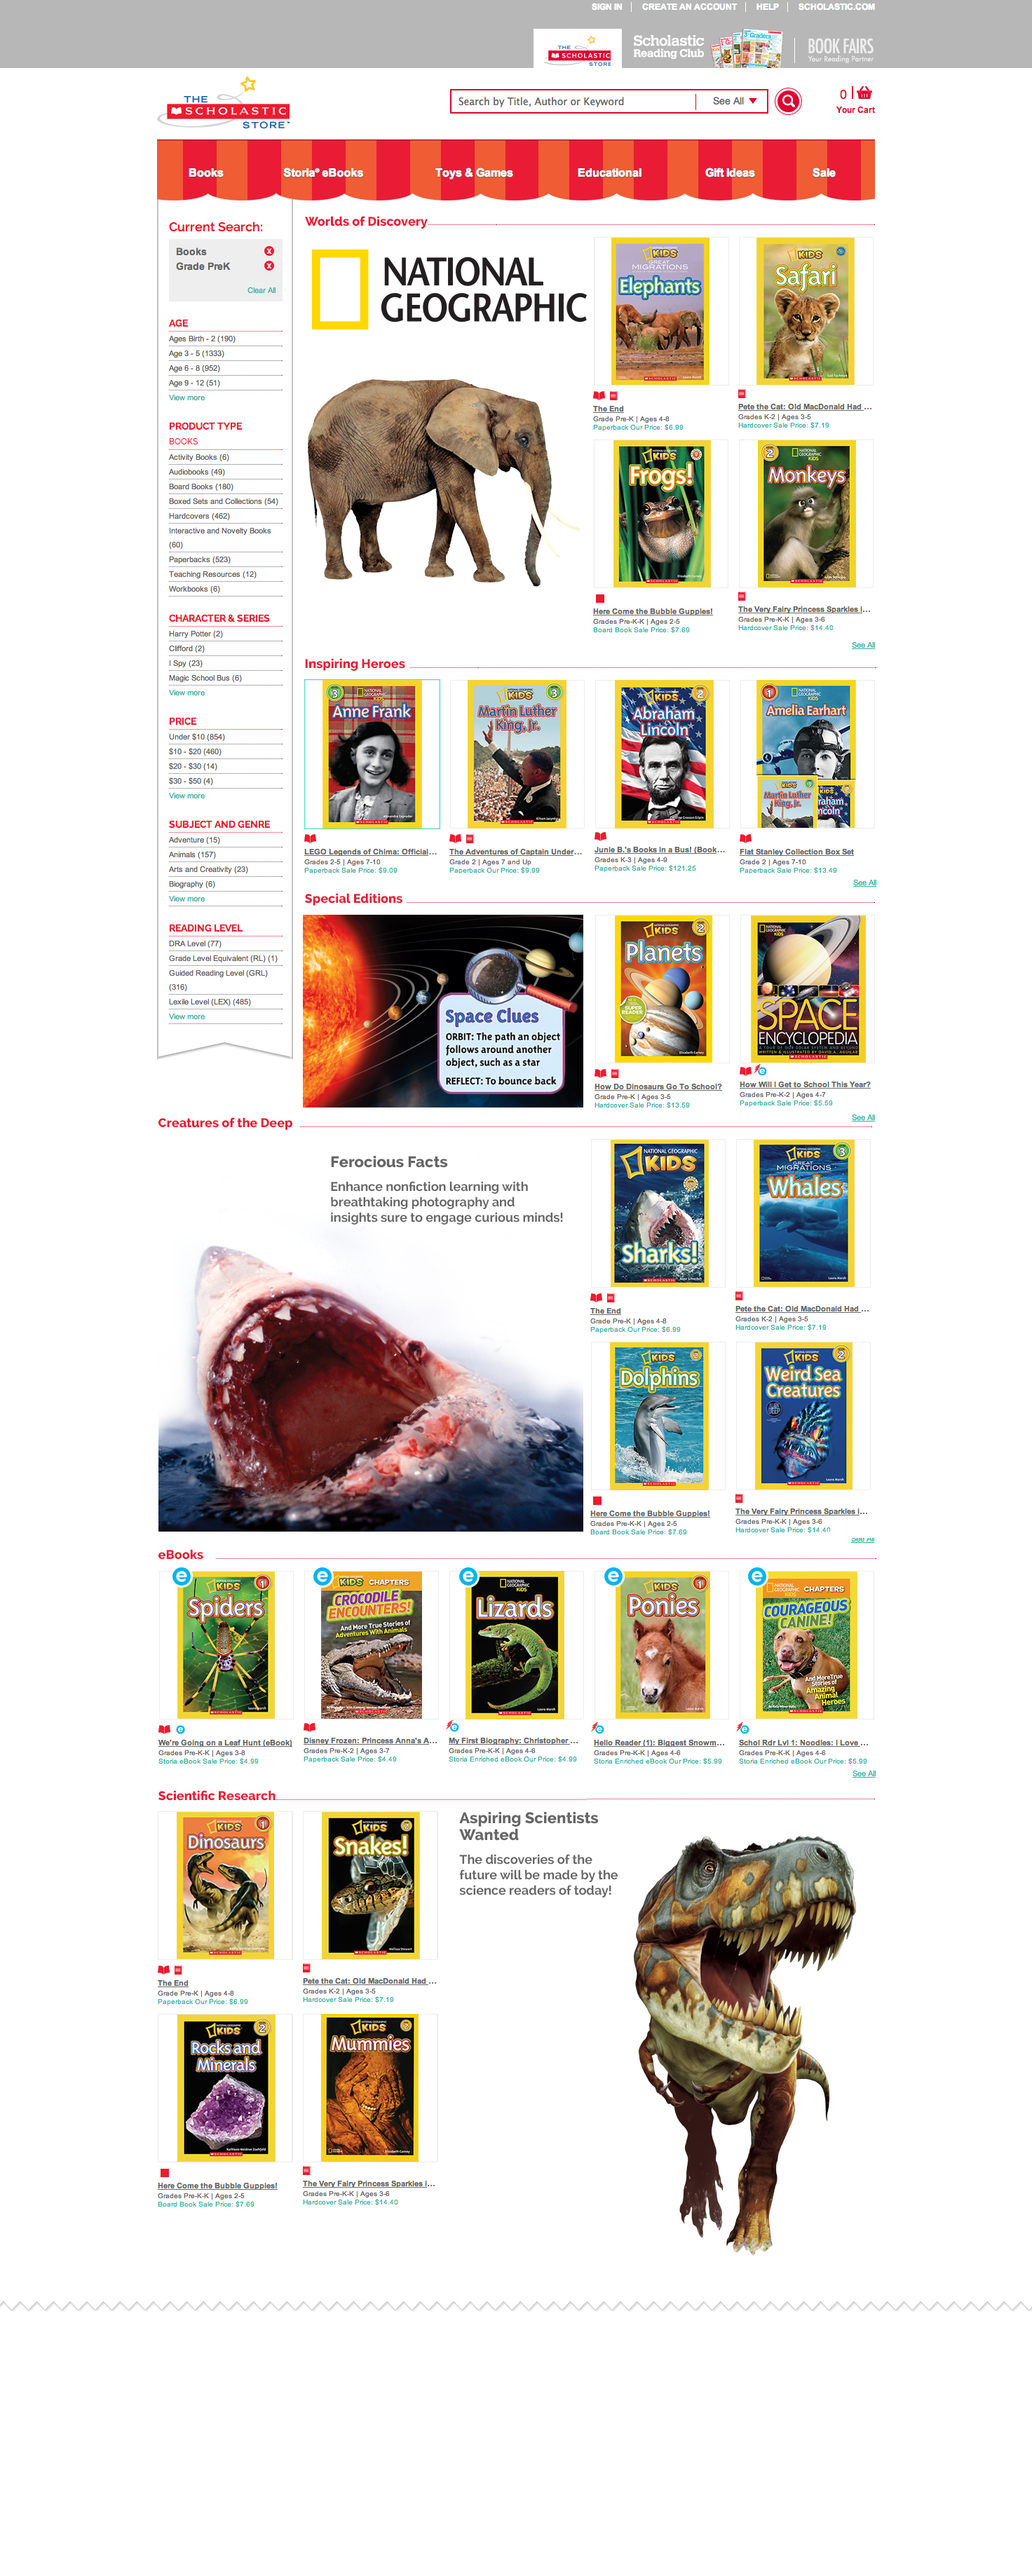 Scholastic Store Online character page.